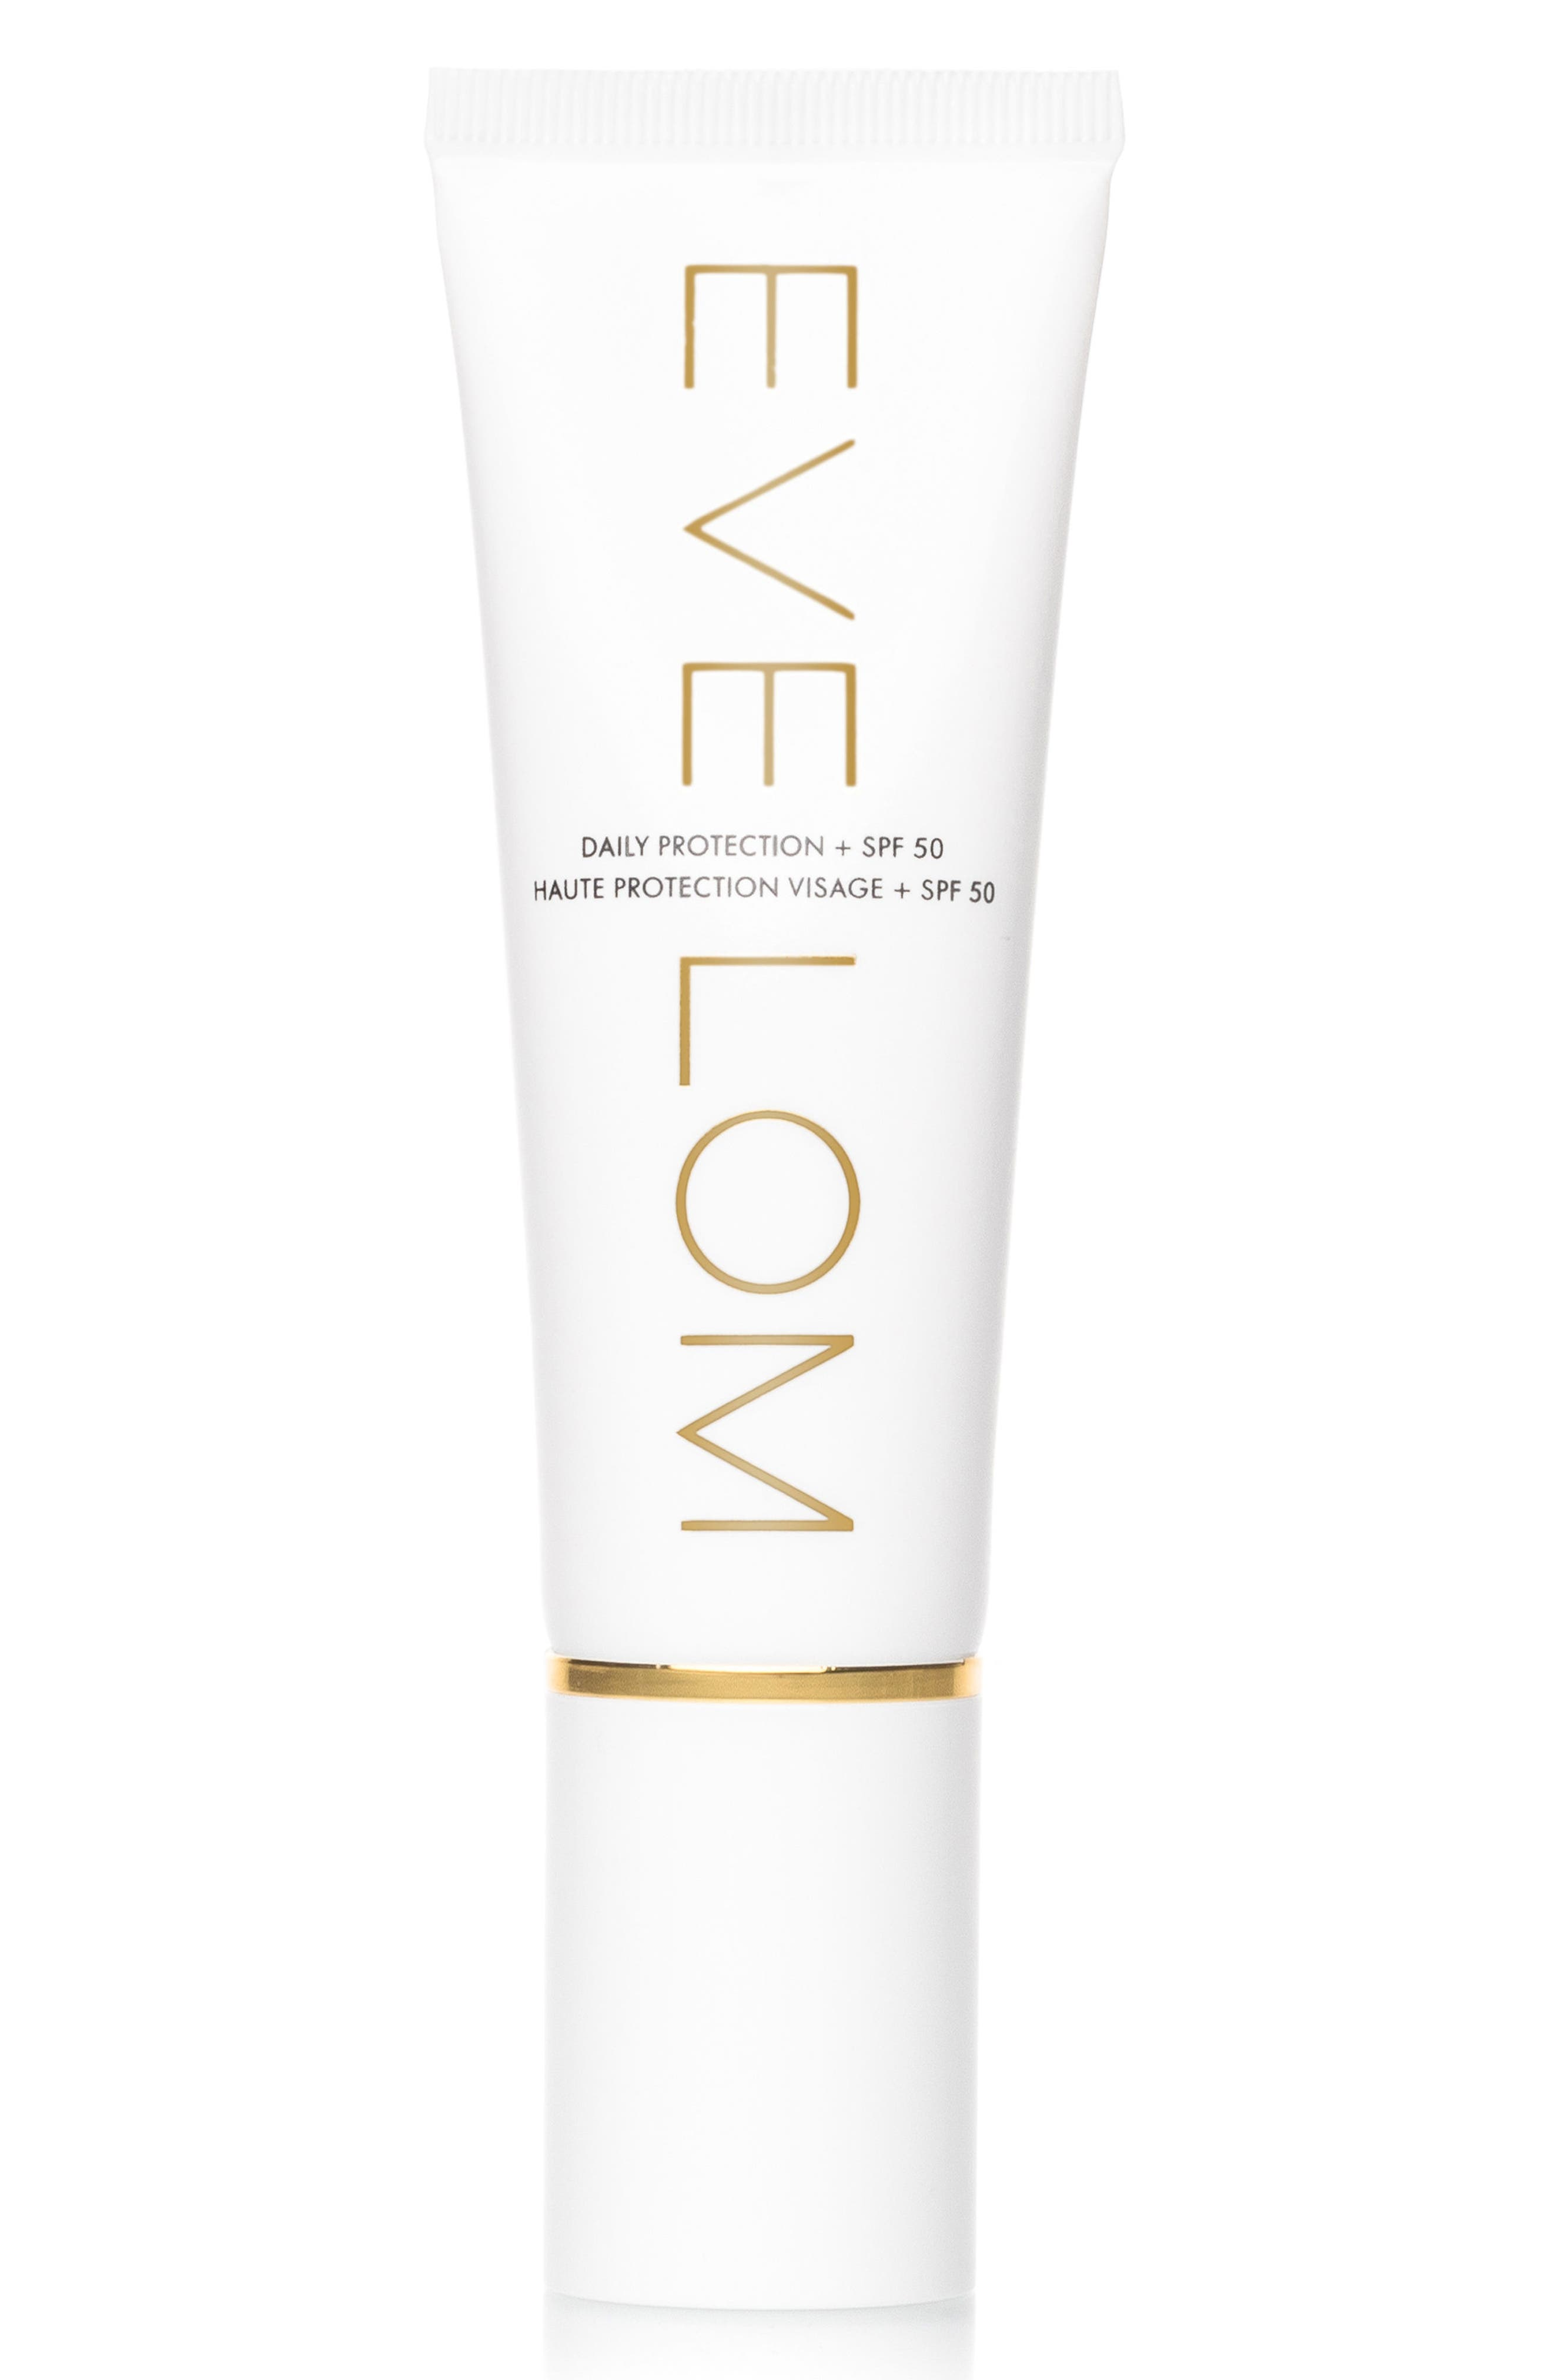 SPACE.NK.apothecary EVE LOM Daily Protection Broad Spectrum SPF 50 Sunscreen